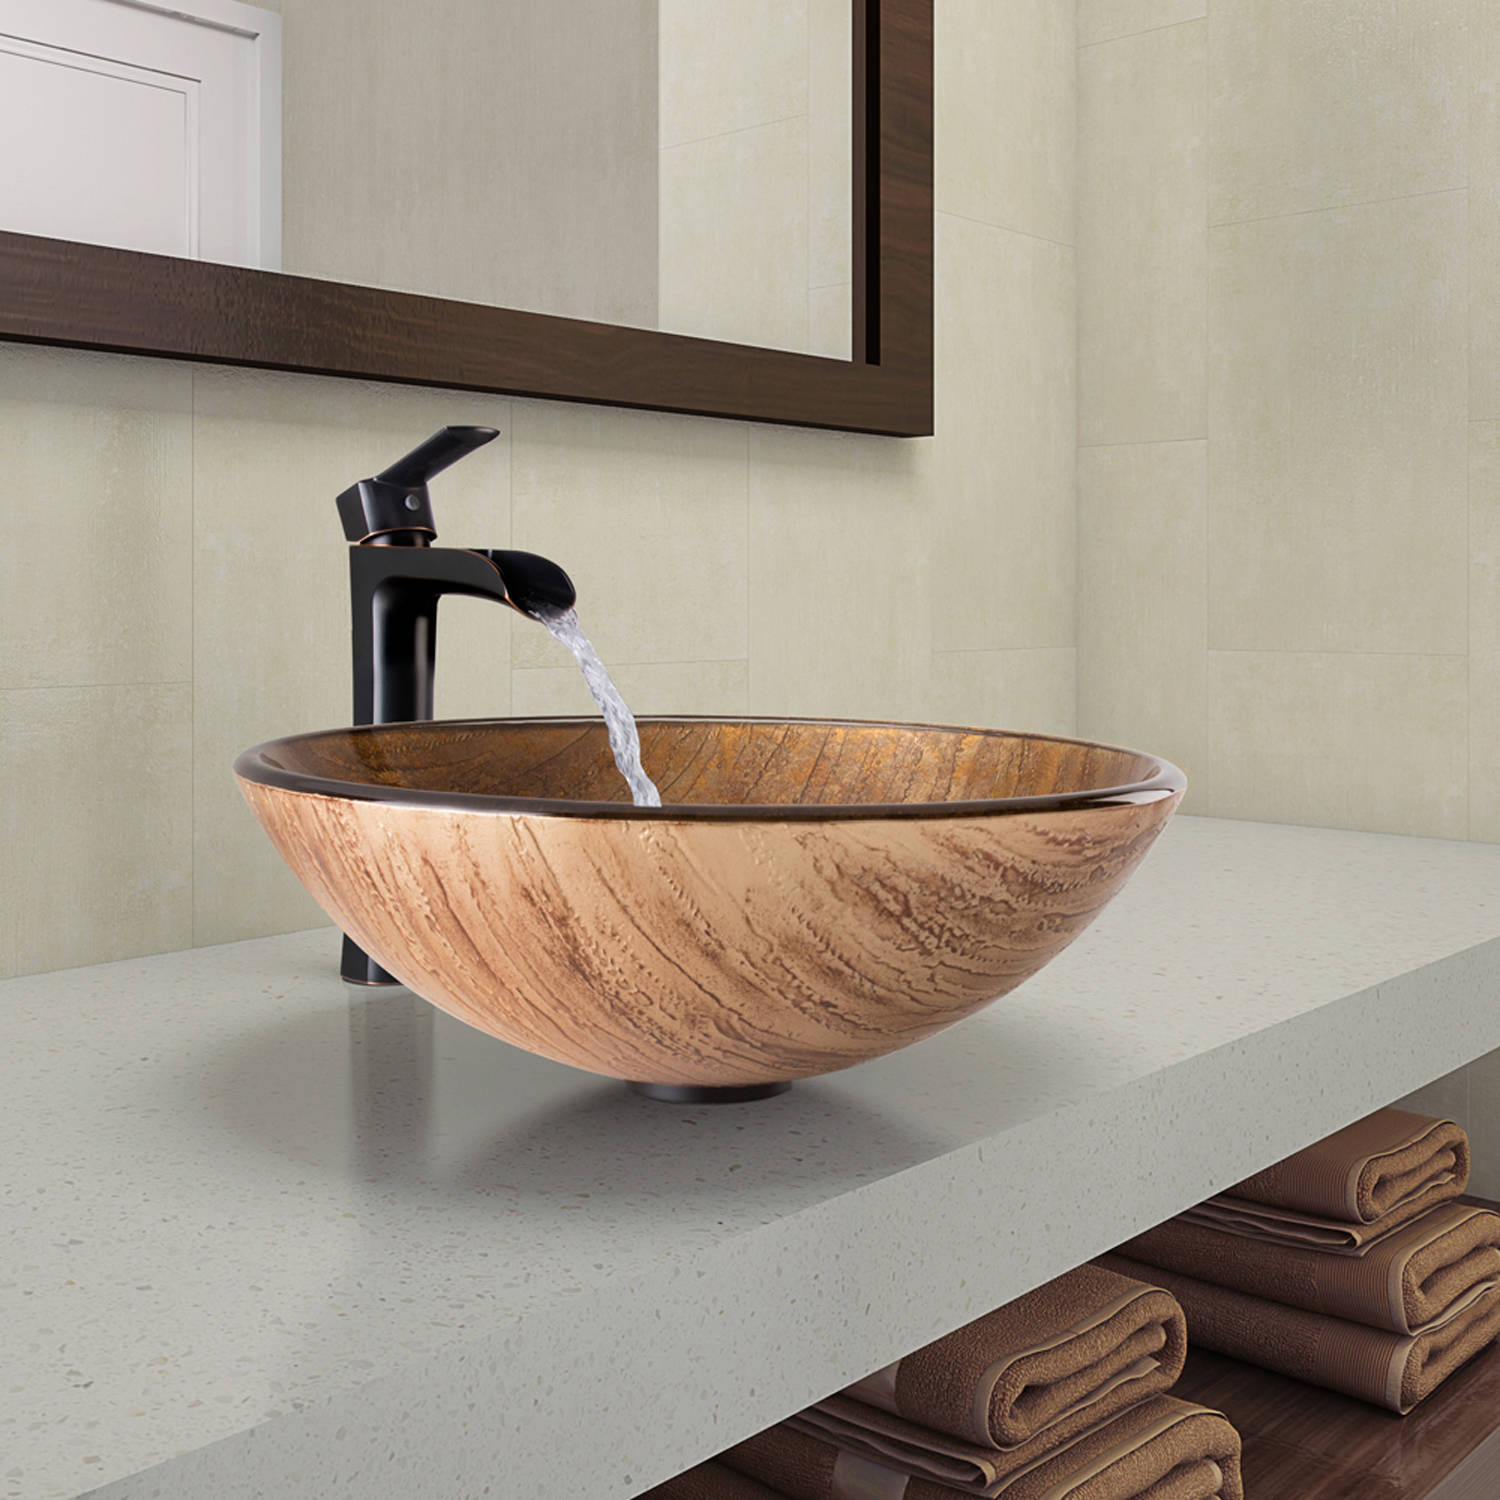 Vigo Amber Sunset Glass Vessel Bathroom Sink and Niko Faucet Set in Antique Rubbed Bronze Finish